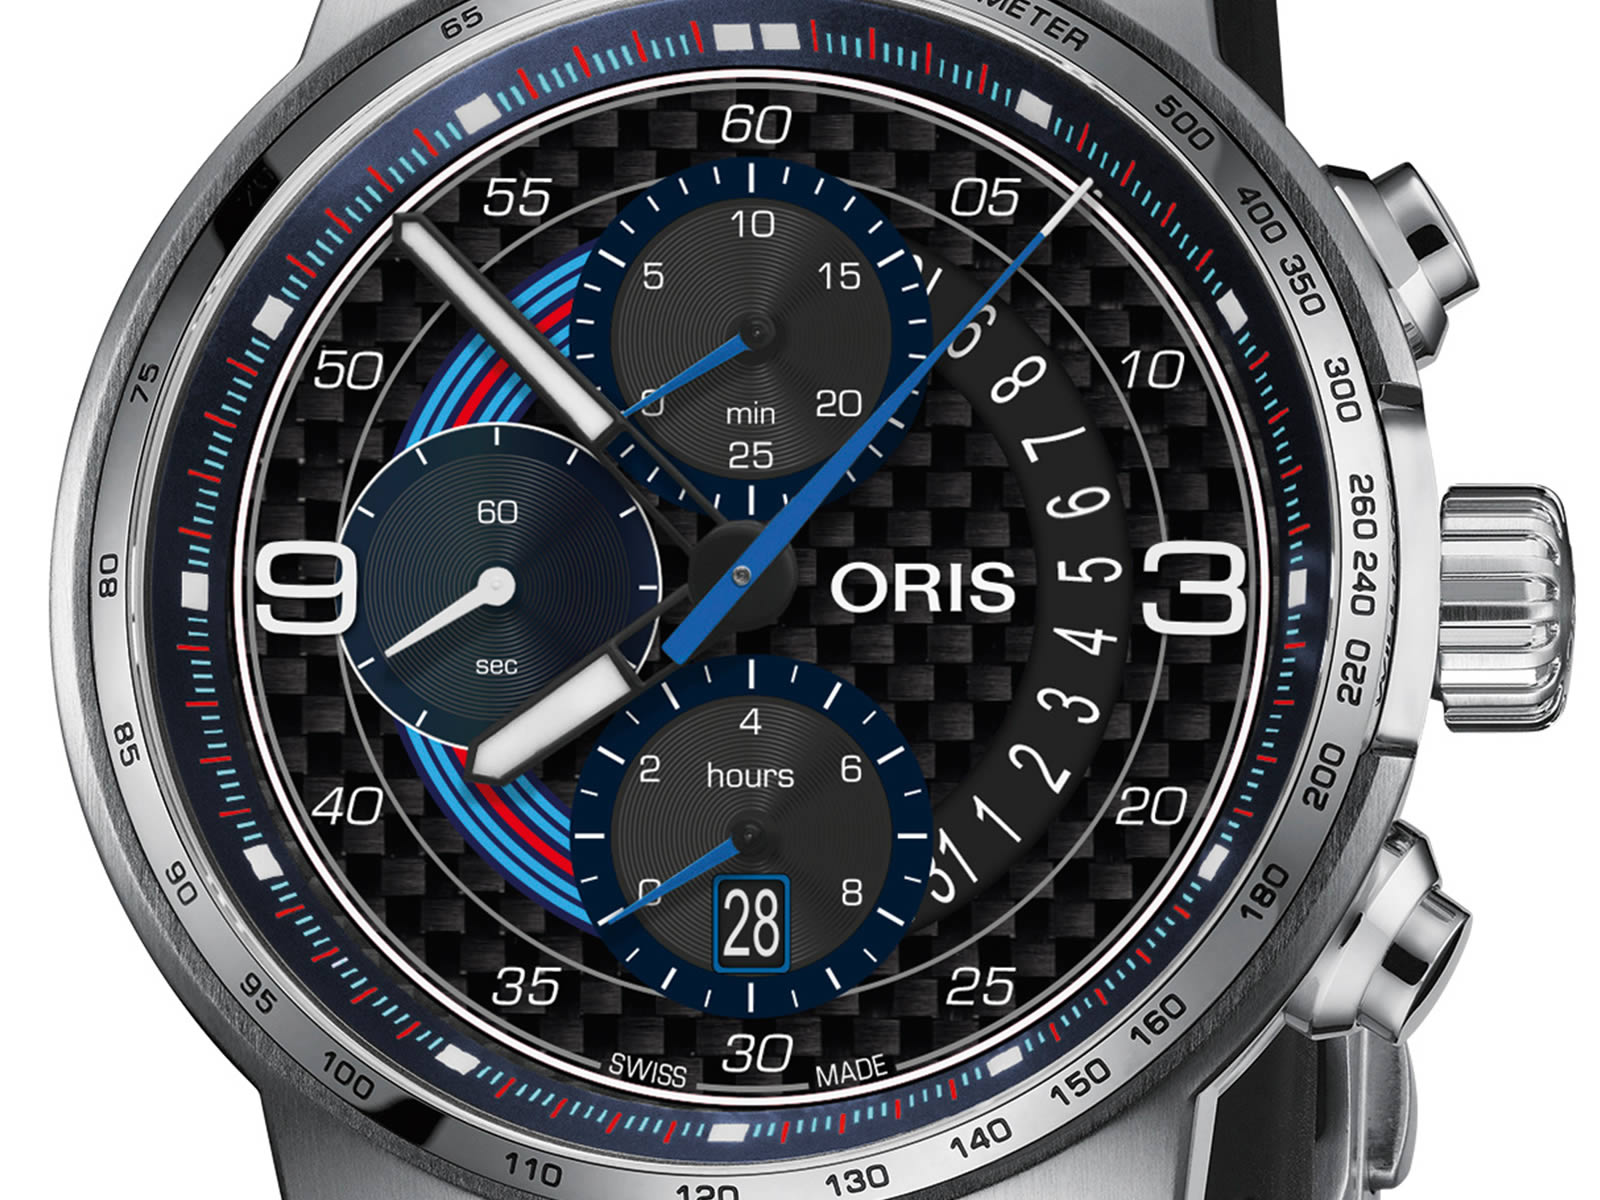 01-774-7717-4184-oris-martini-racing-limited-edition-chronograph-2018-2-.jpg